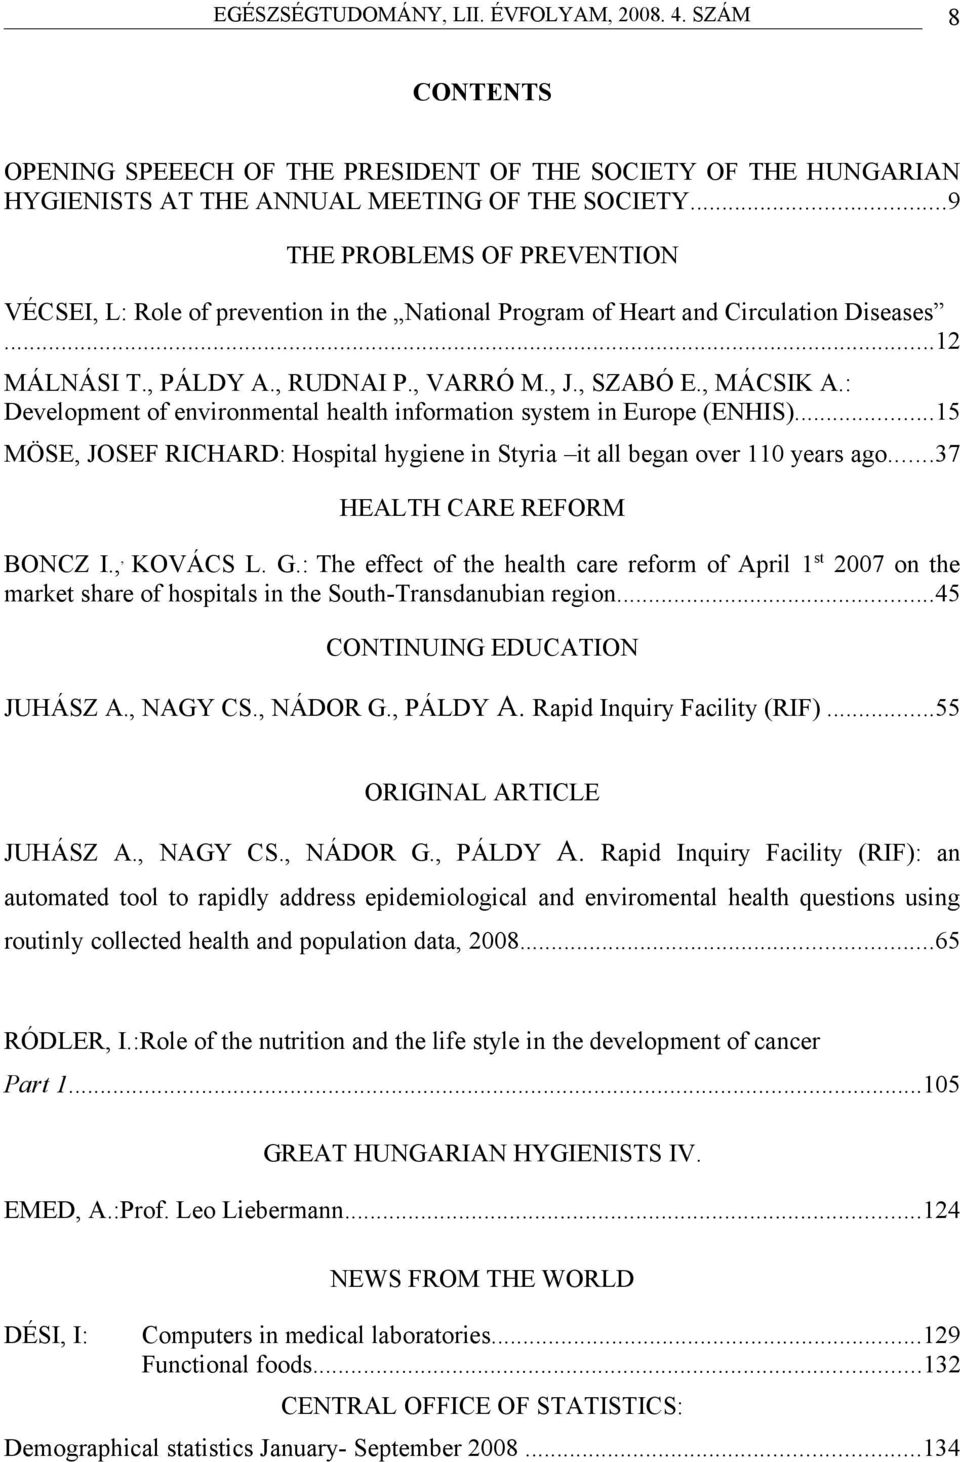 : Development of environmentl helth informtion system in Europe (ENHIS)...15 MÖSE, JOSEF RICHARD: Hospitl hygiene in Styri it ll begn over 110 yers go...37 HEALTH CARE REFORM BONCZ I.,, KOVÁCS L. G.